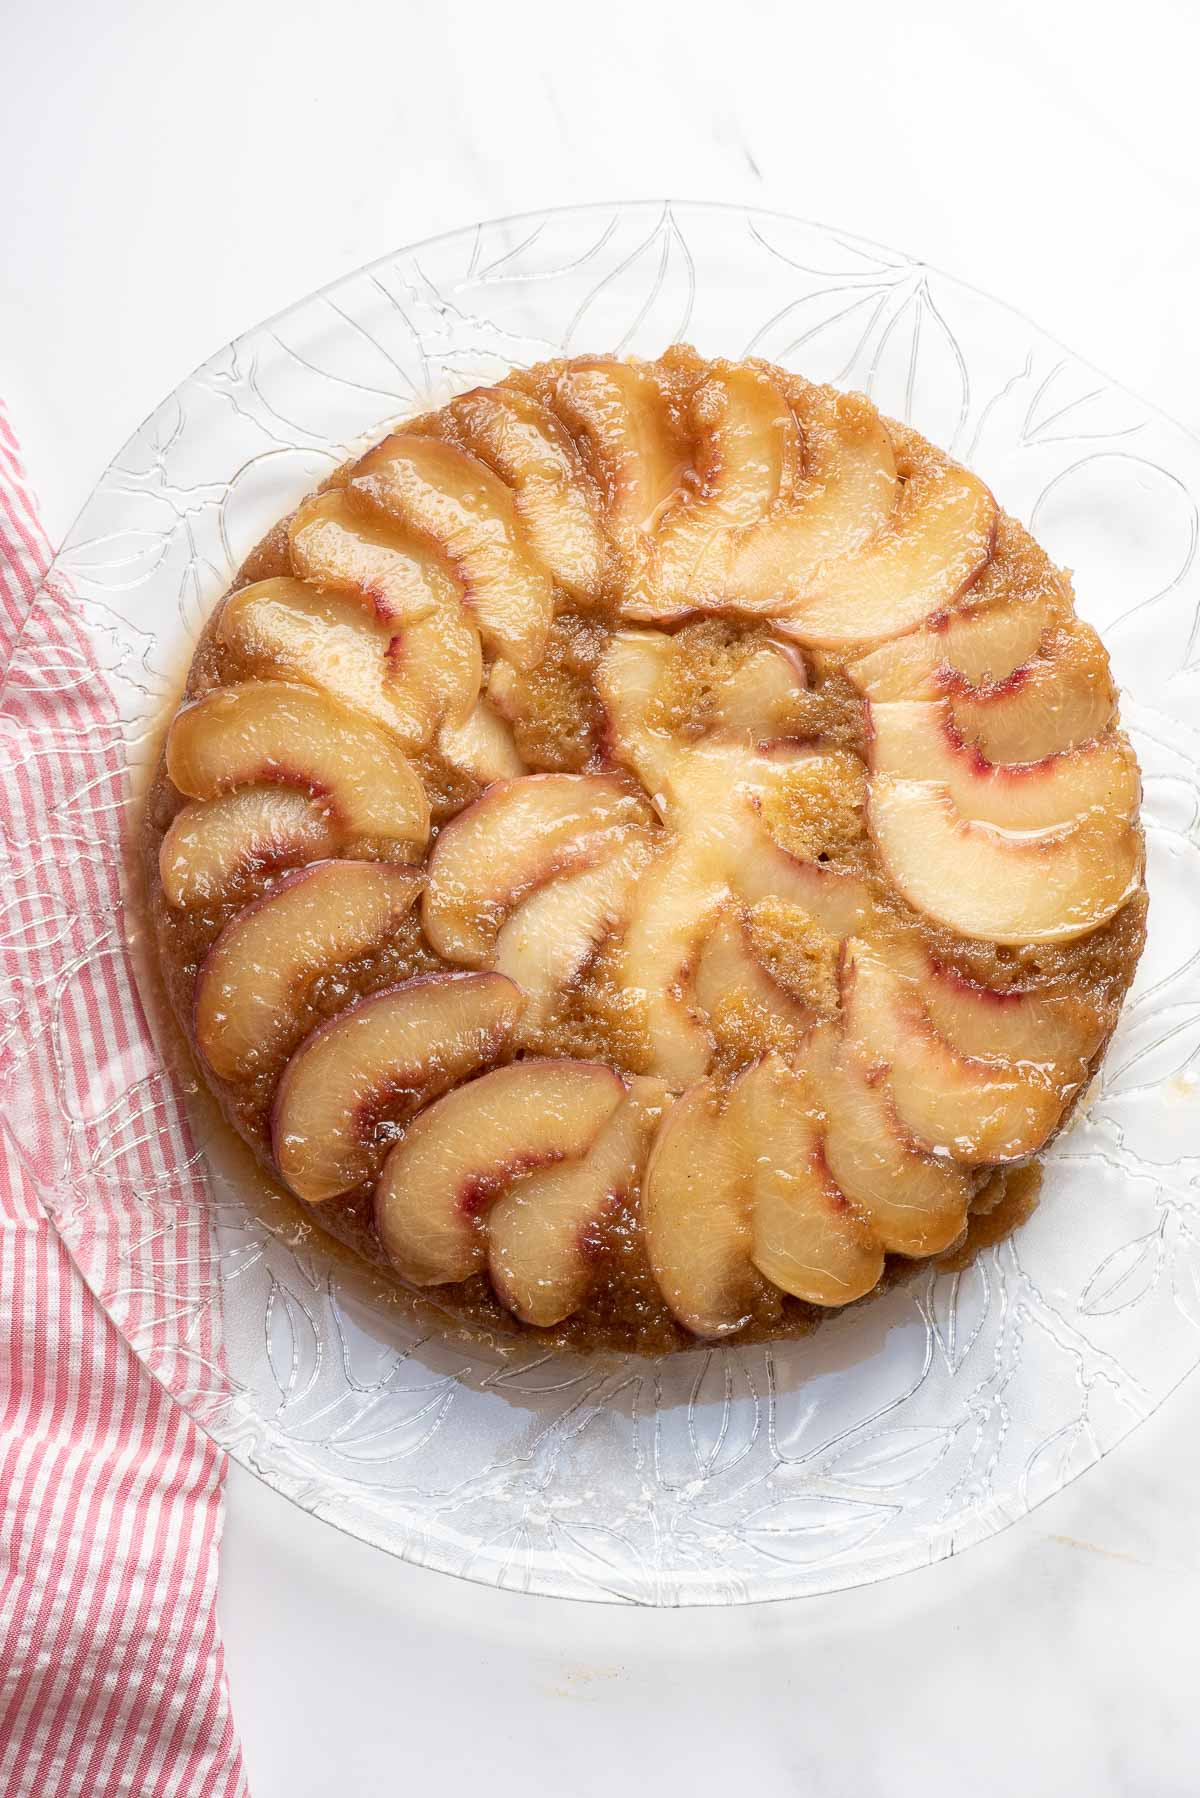 peach upside down cake on serving platter and cloth